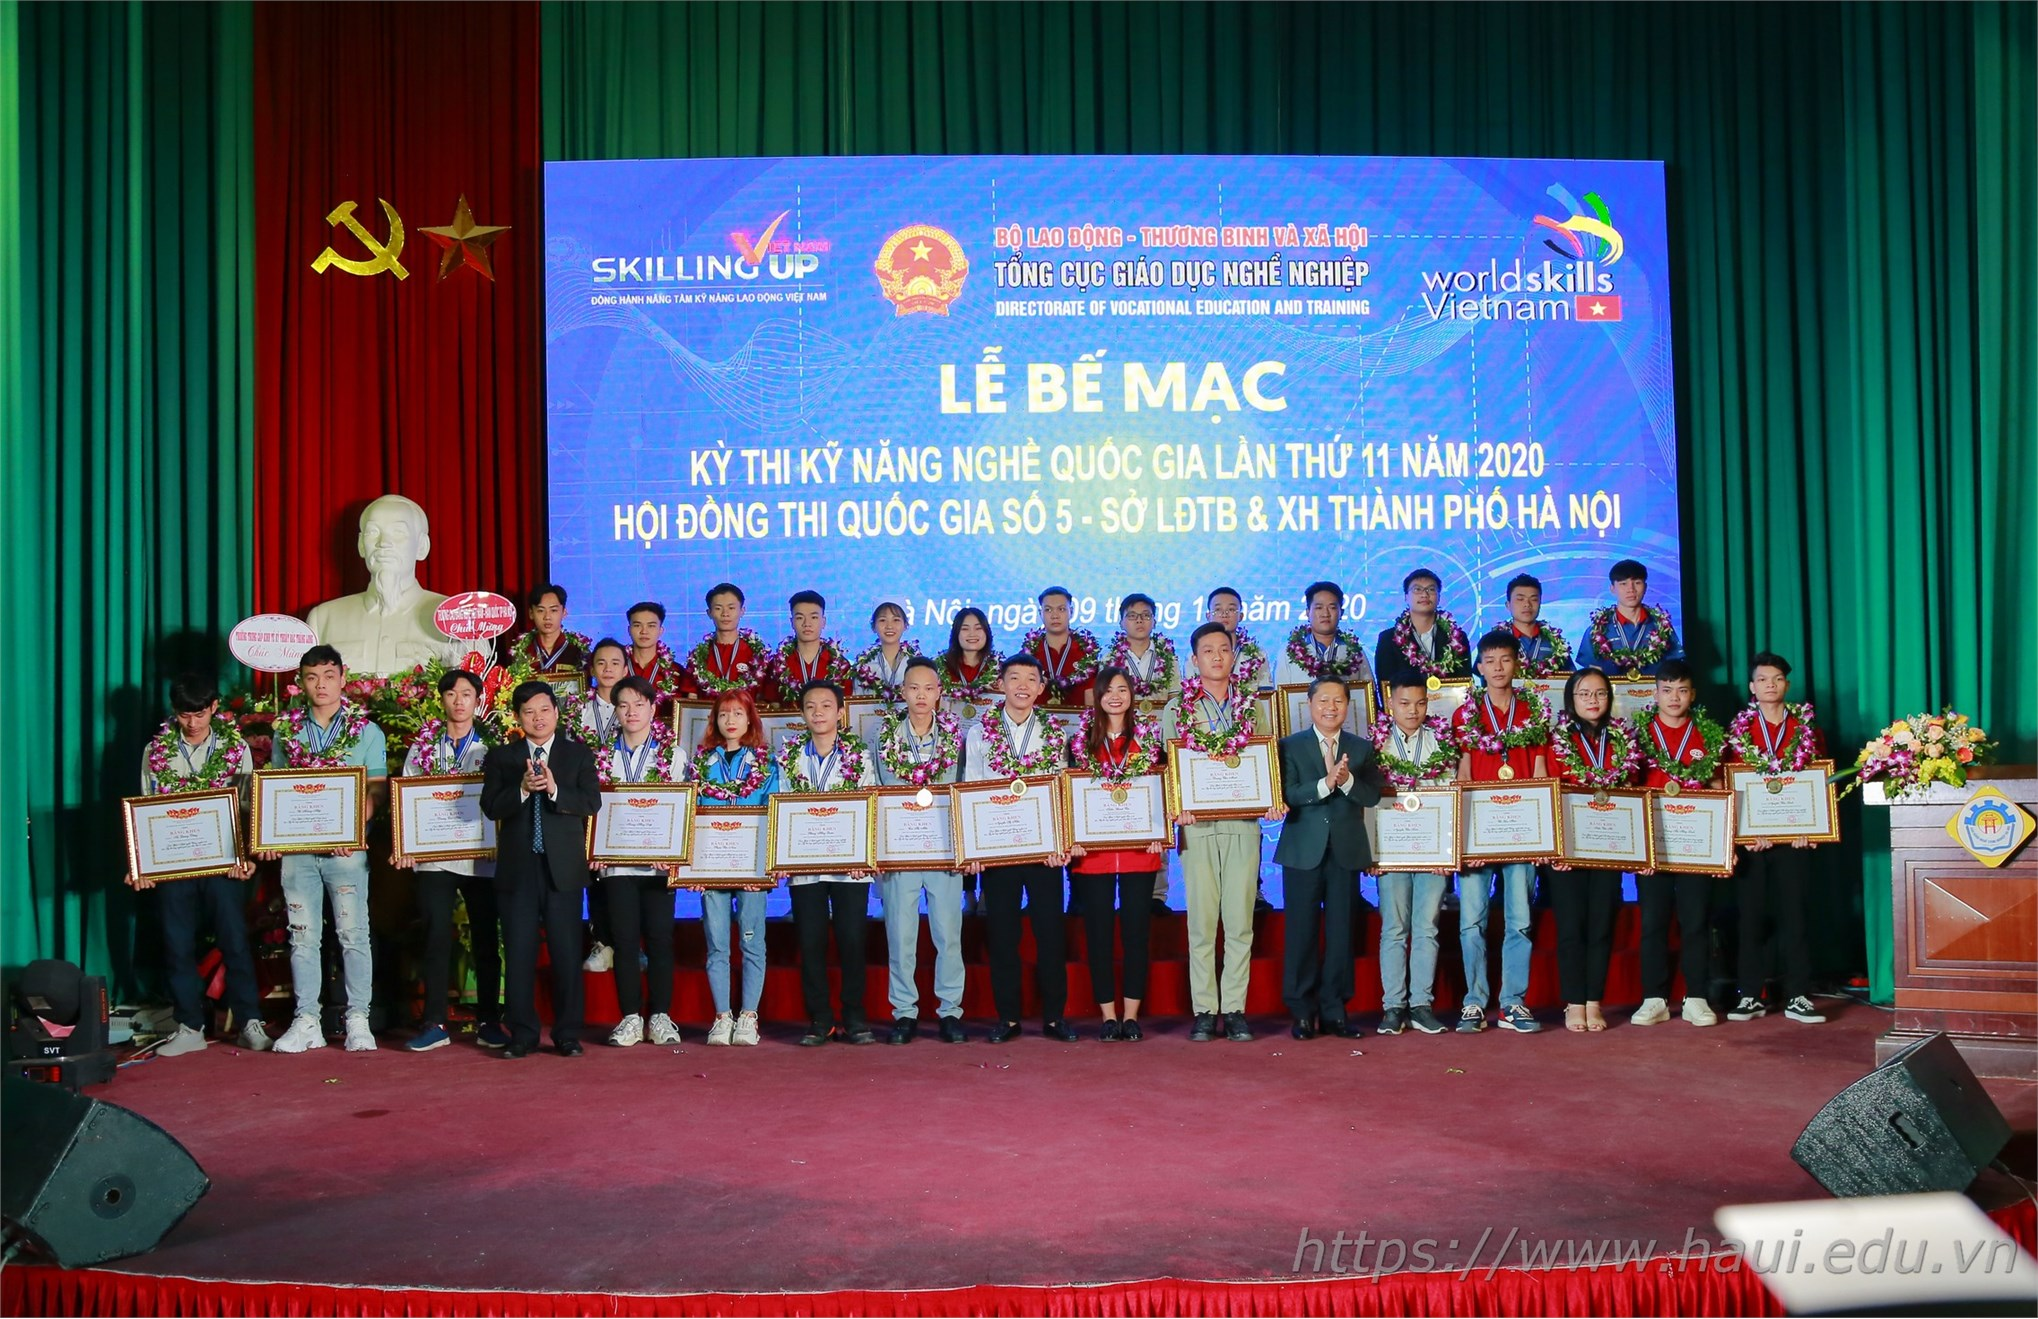 HaUI students won 4 Gold Medals at the National Vocational Skills Competition 2020